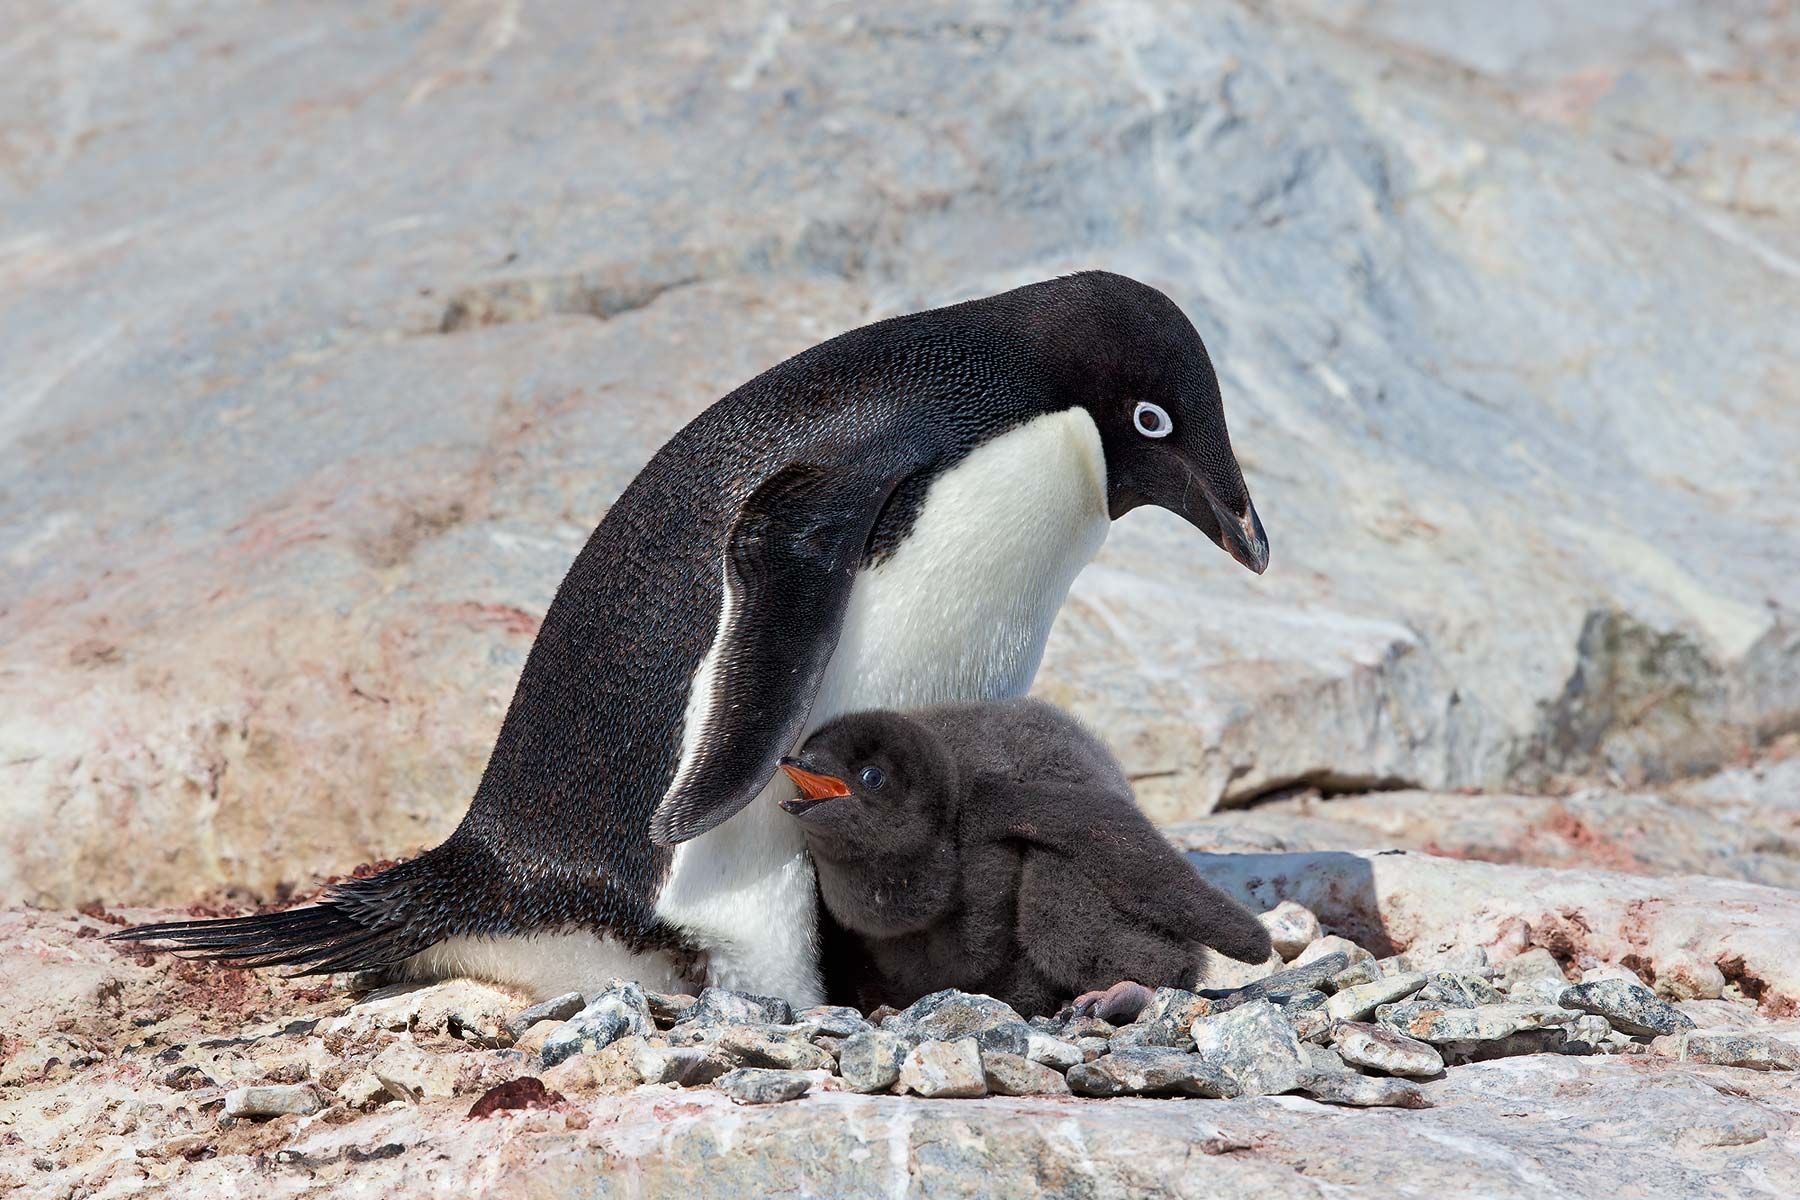 Adelie-Penguin-on-nest-with-chick-in-sun_E7T2228-Petermann-Island,-Antarctica.jpg